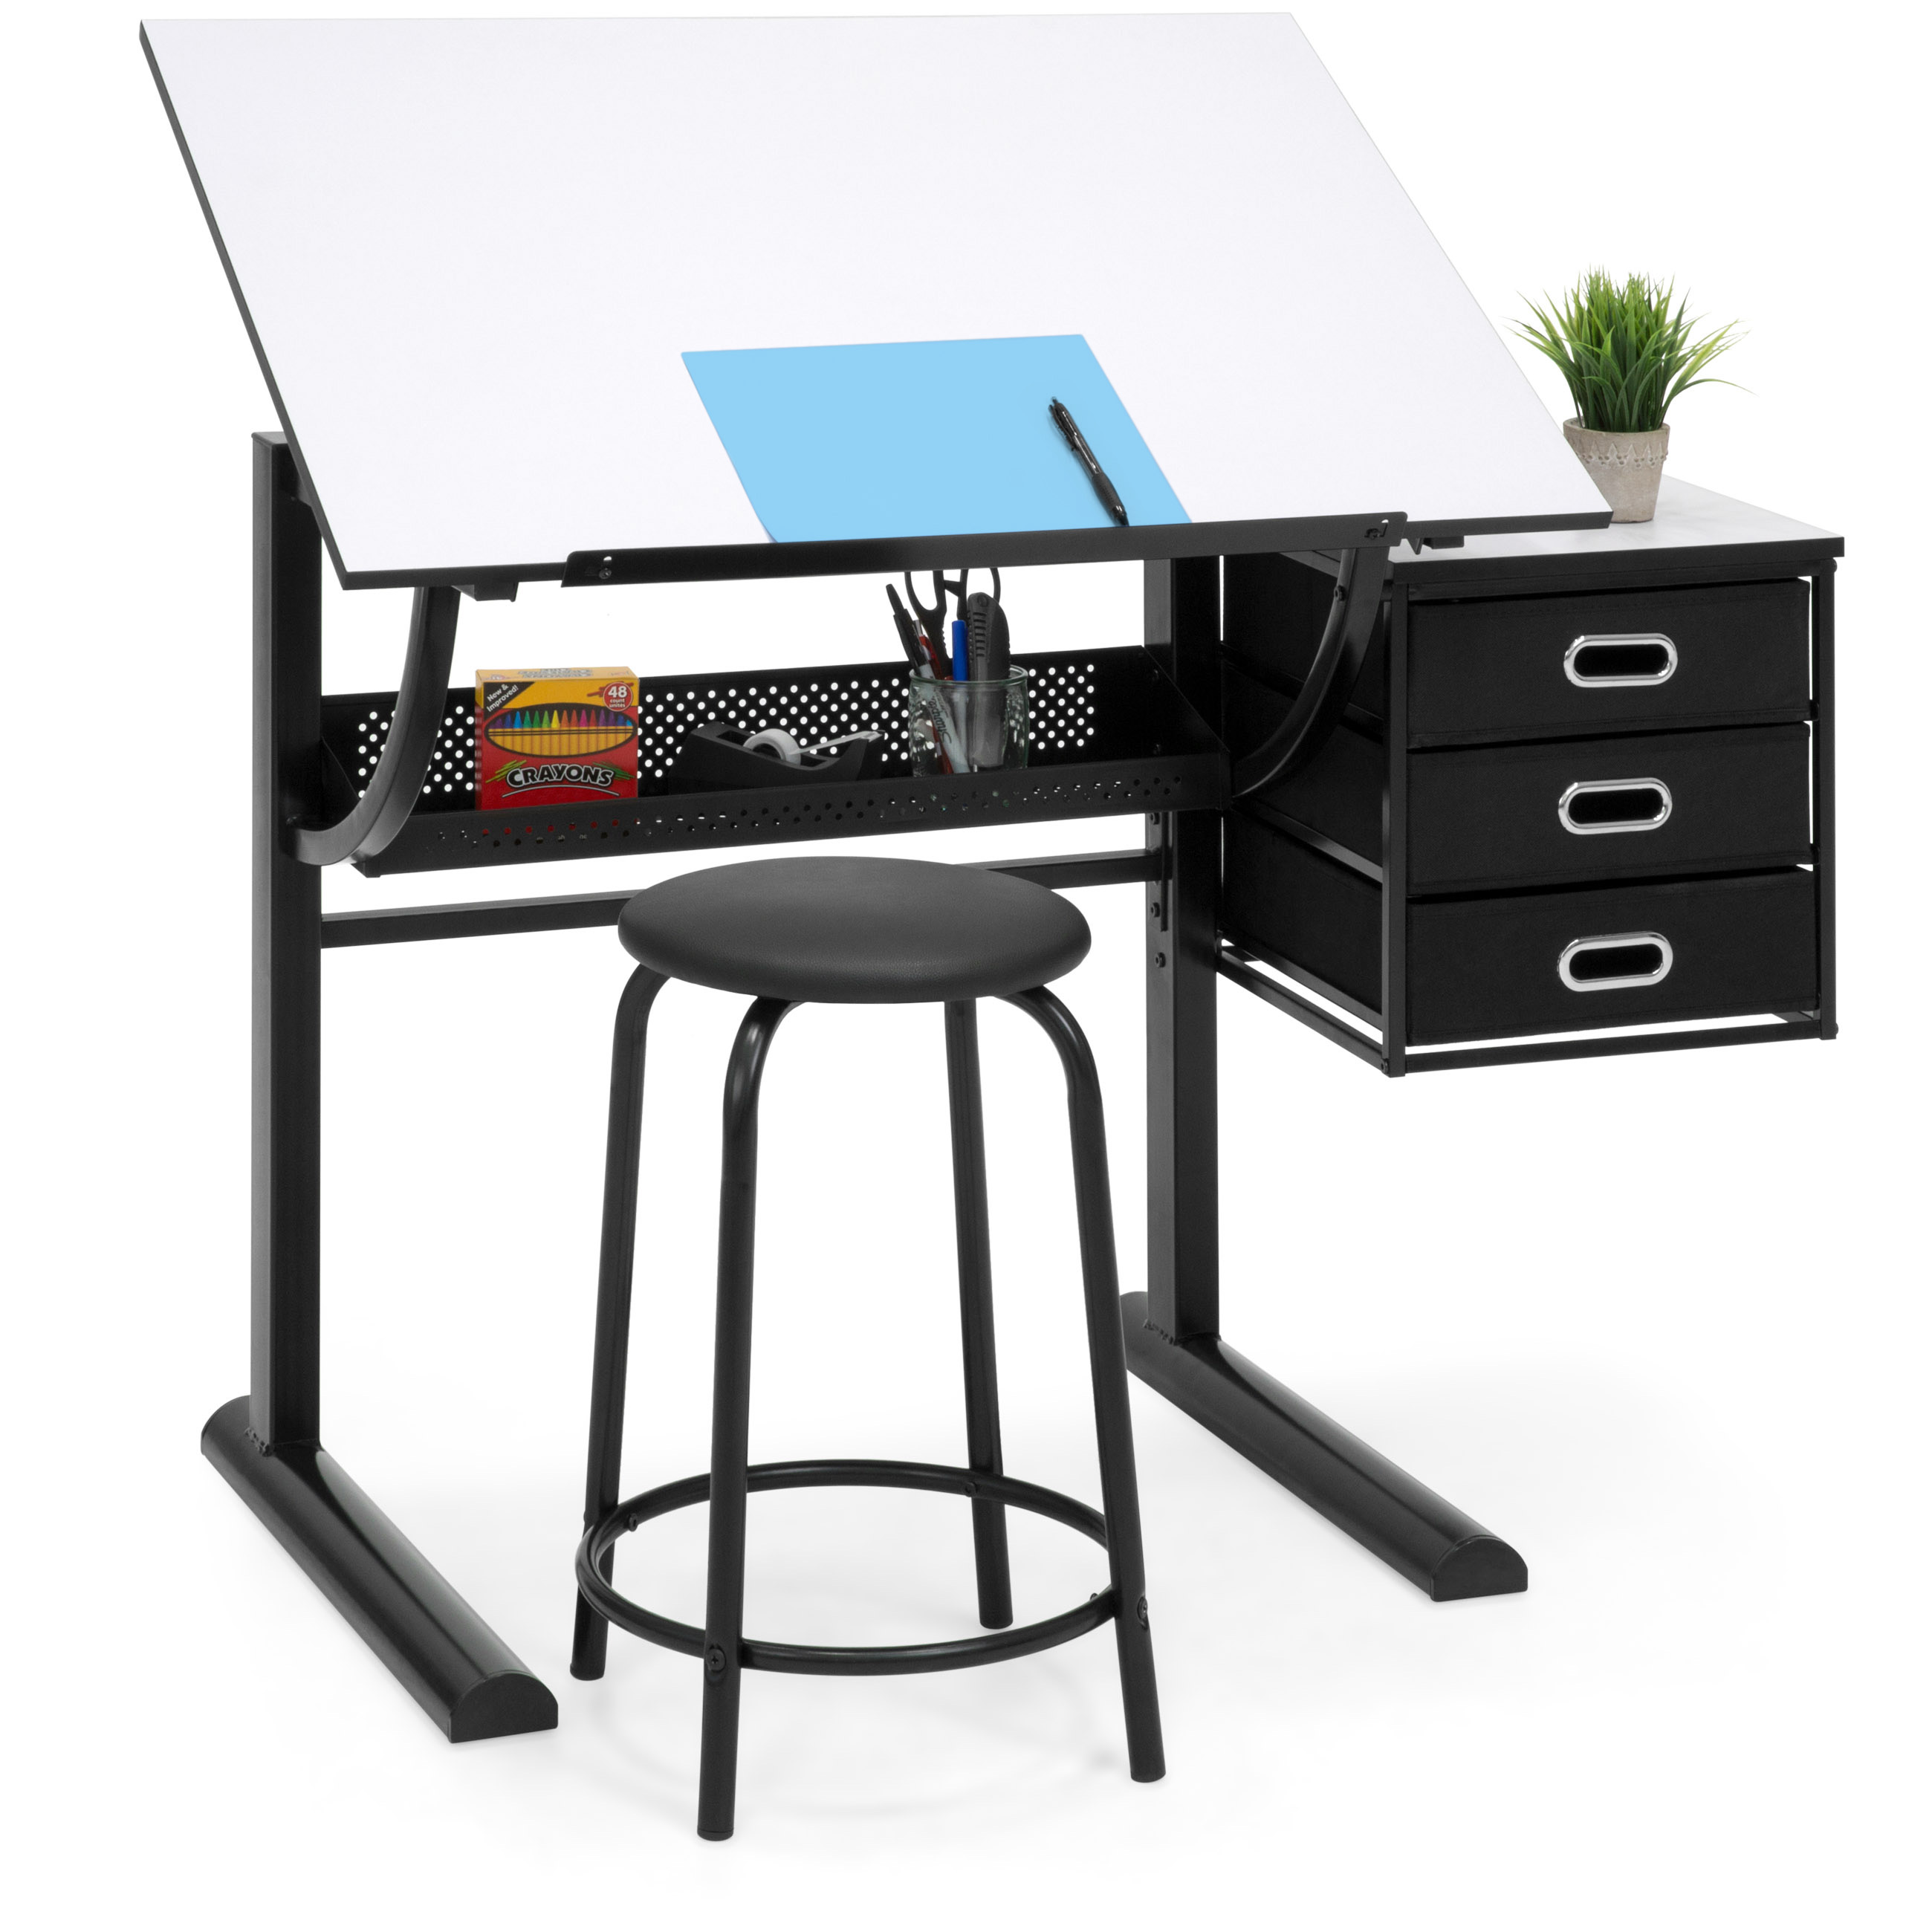 Charmant Best Choice Products Drawing Drafting Craft Art Table Folding Adjustable  Desk W/ Stool   Black